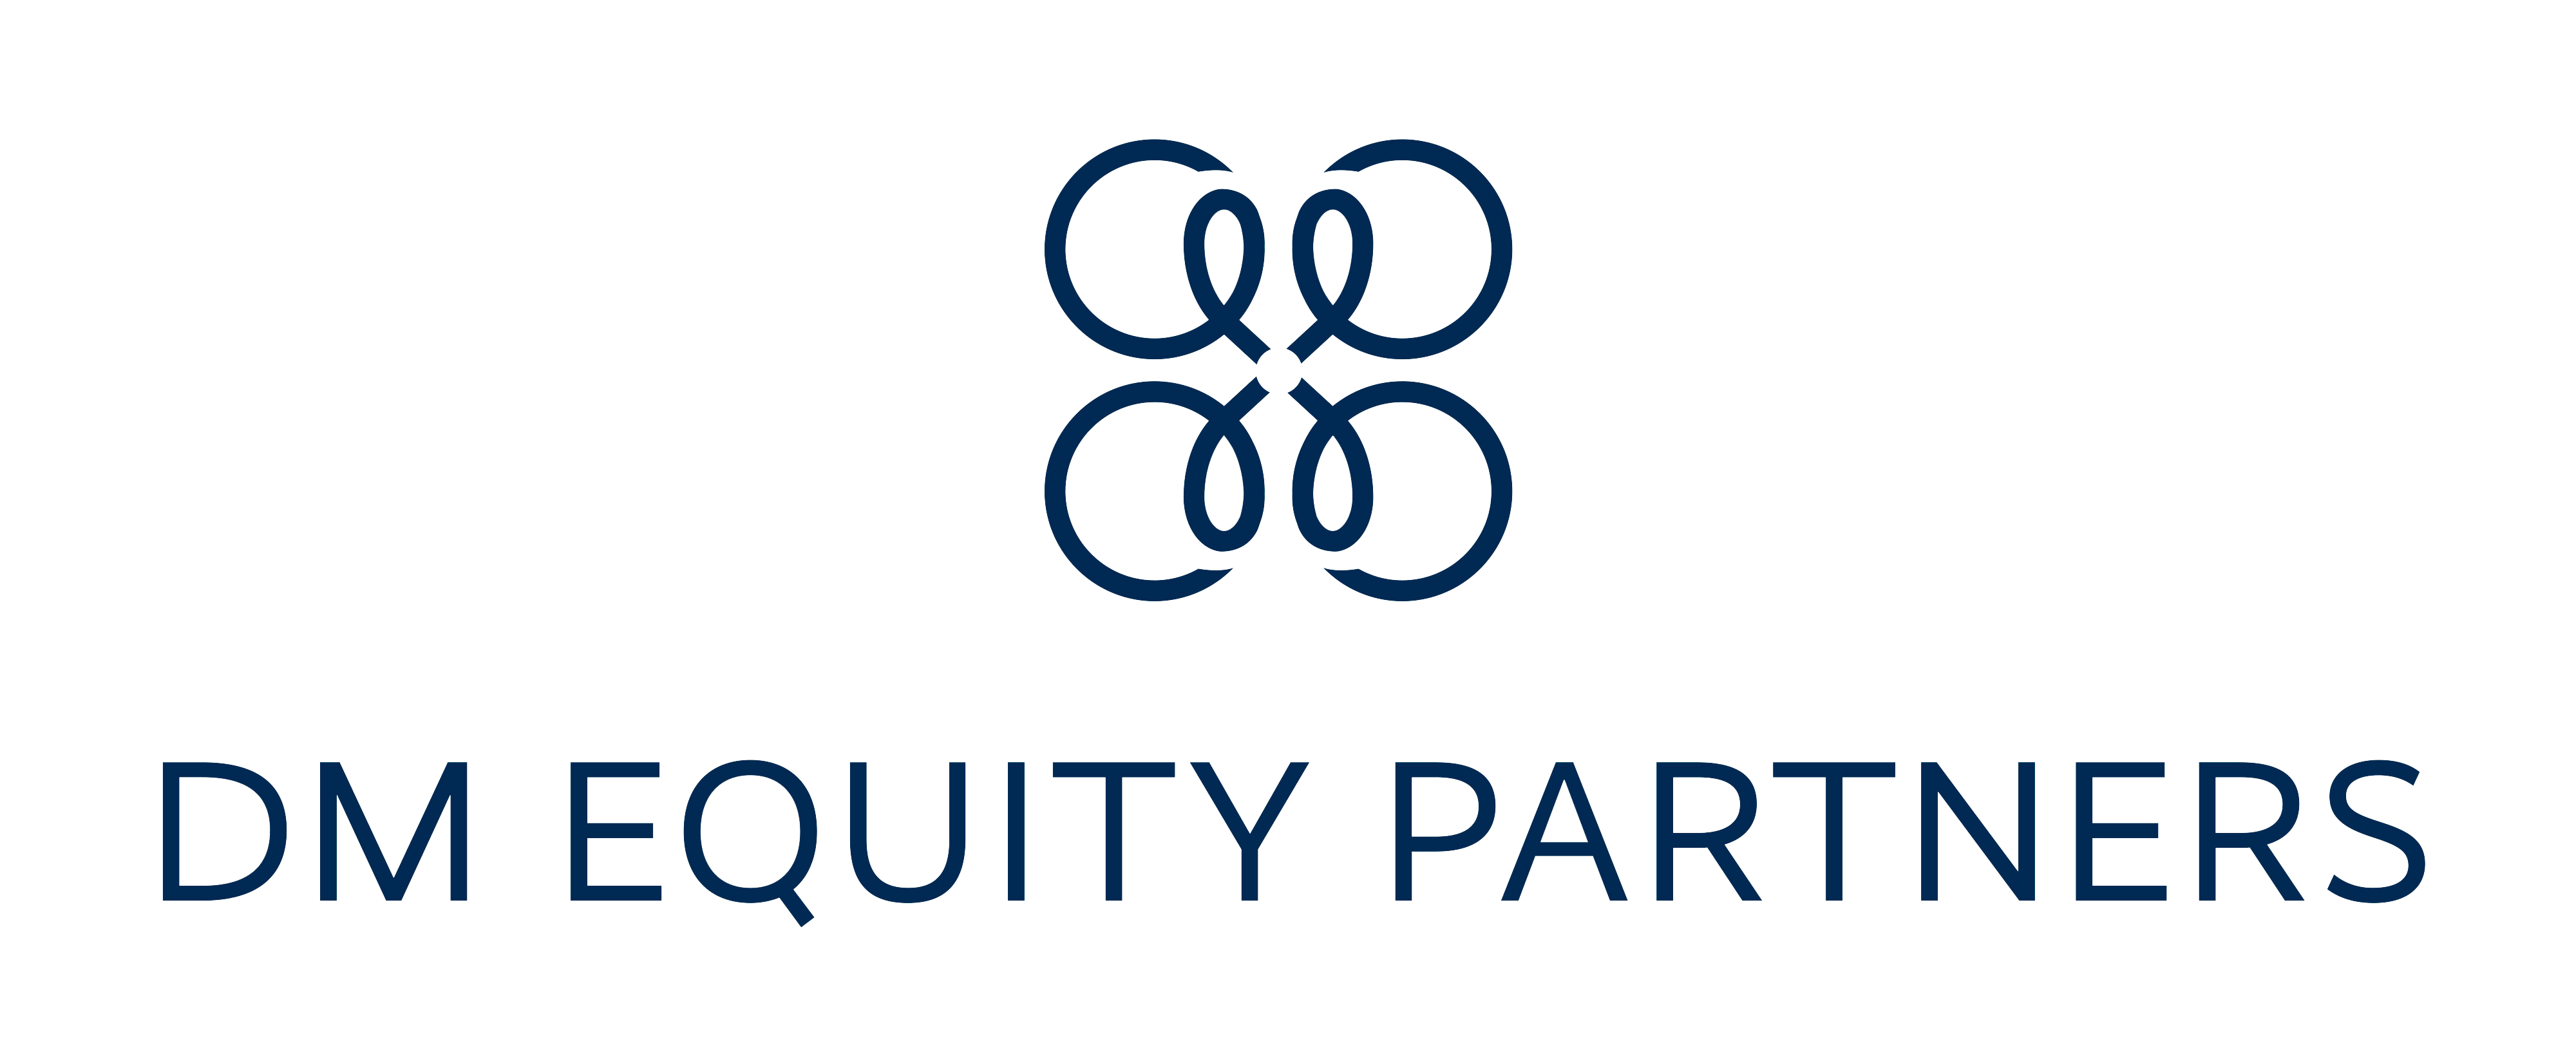 DM Equity Partners